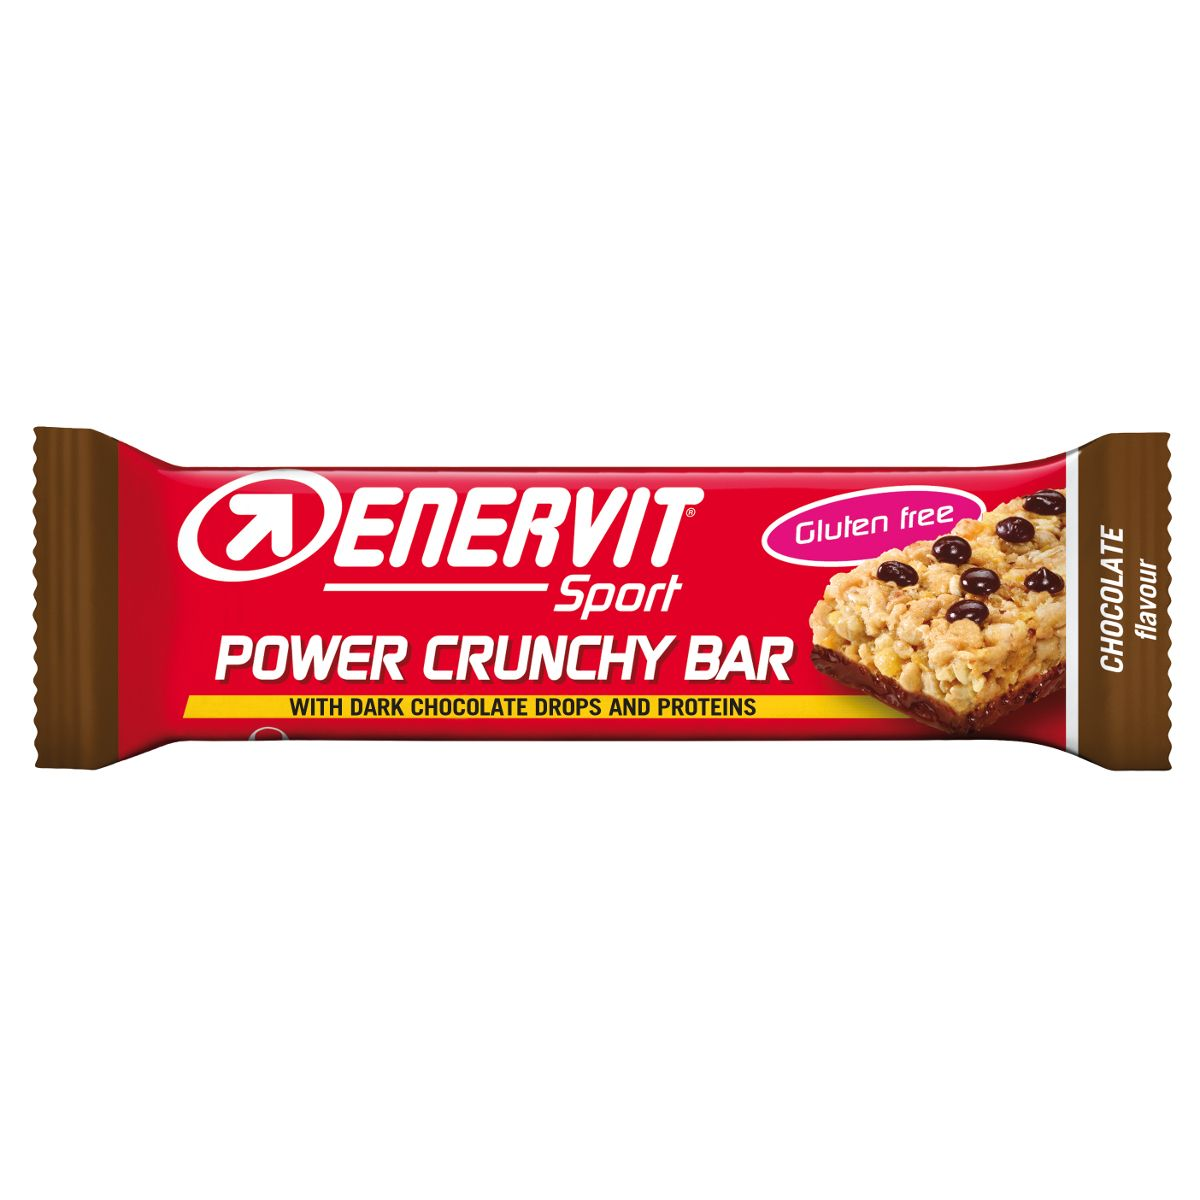 Power Crunchy Bar carbohydrate bar Choco – gluten-free